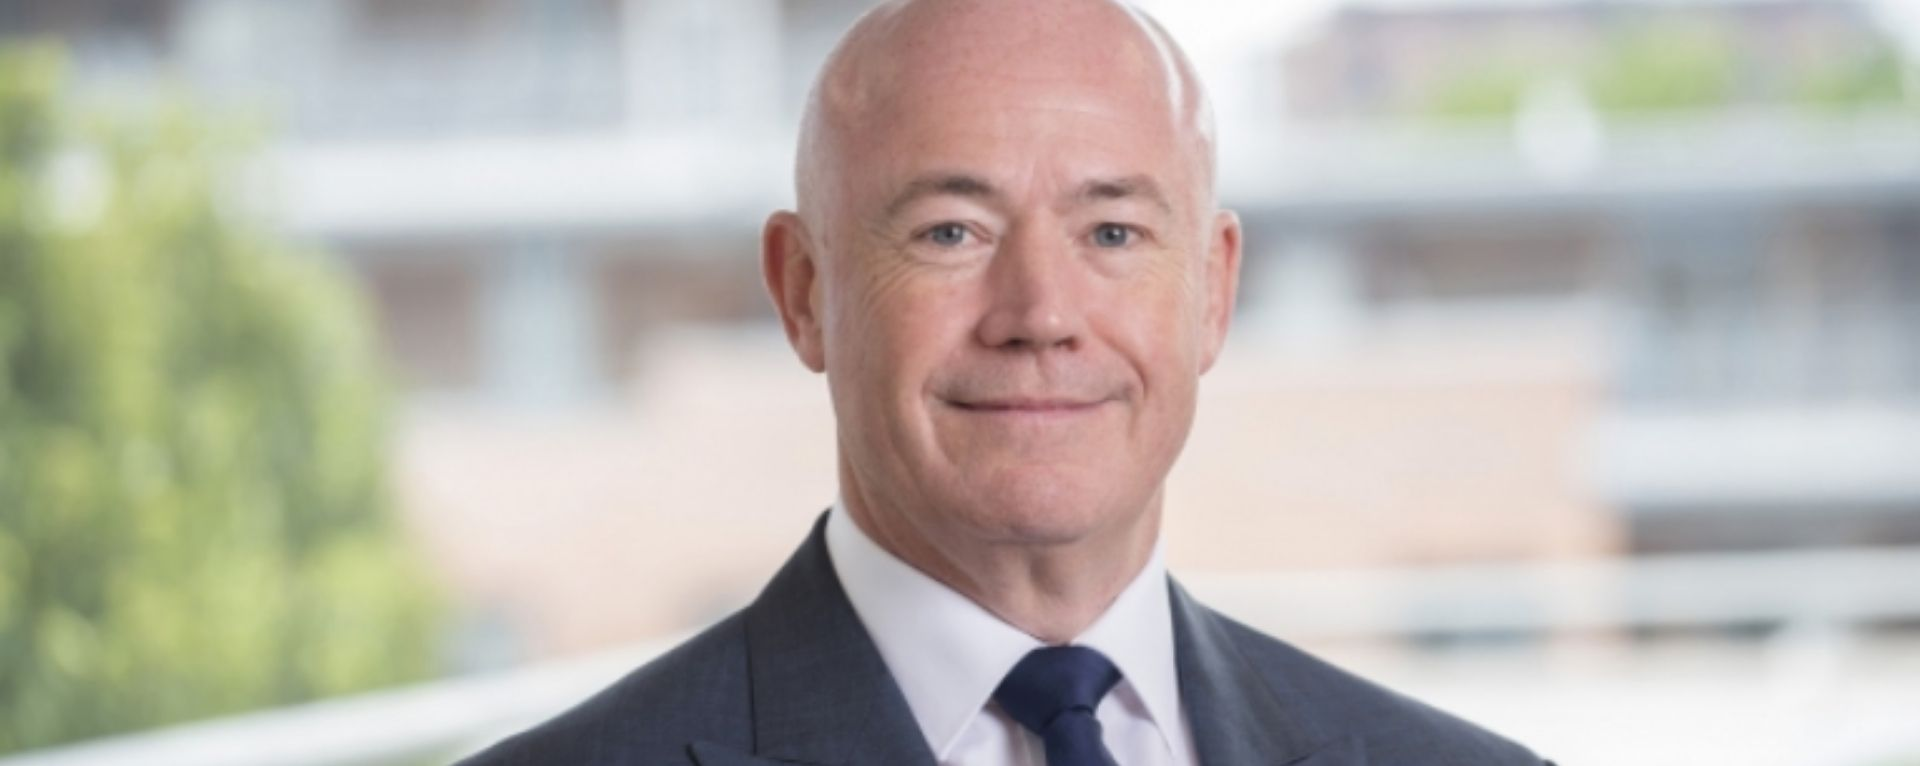 Begbies Traynor makes acquisition announcement